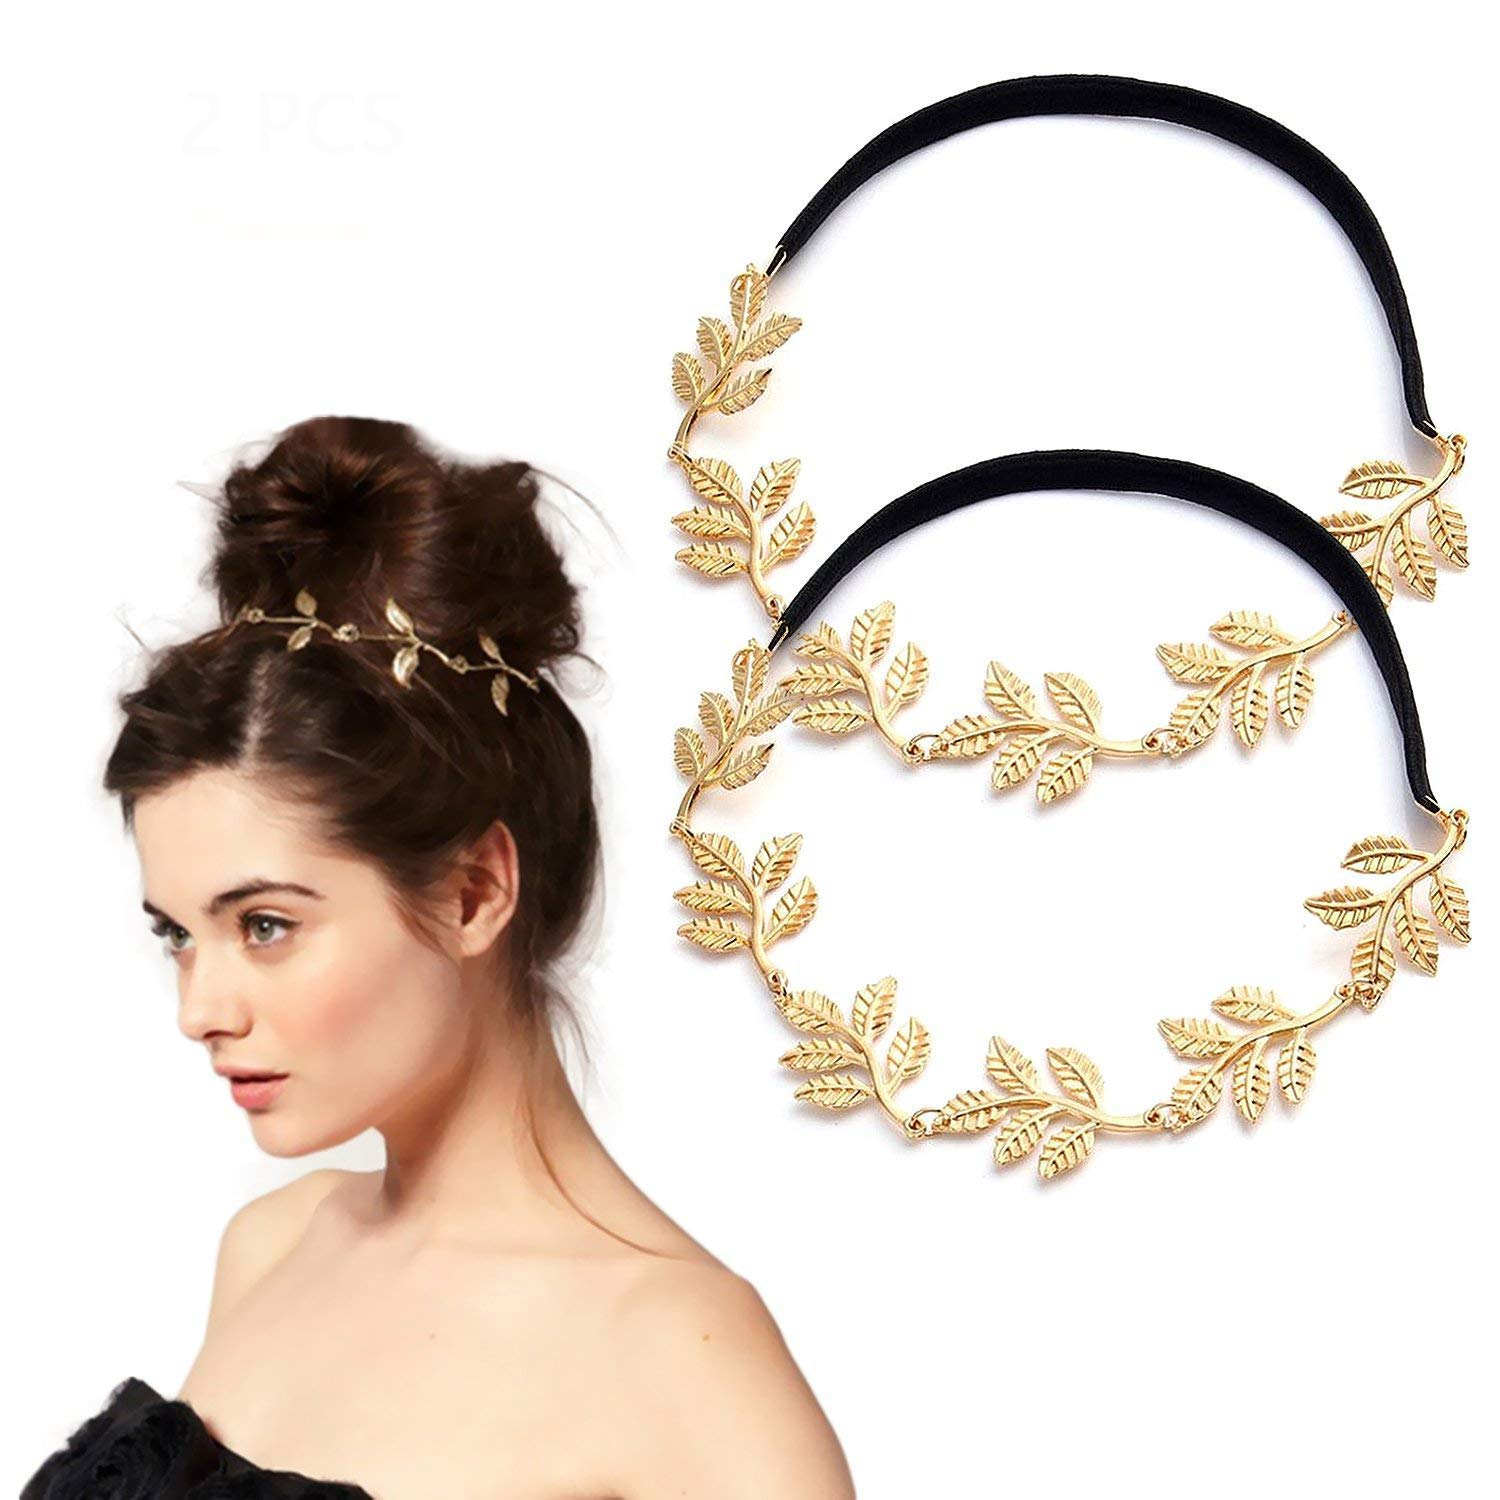 0143aa6761320 Amazon.com : Gold Leaf Headband for Women, 2 Pcs Jewelry Head Chain Golden  Elastic Hair Band Hair Accessories : Beauty